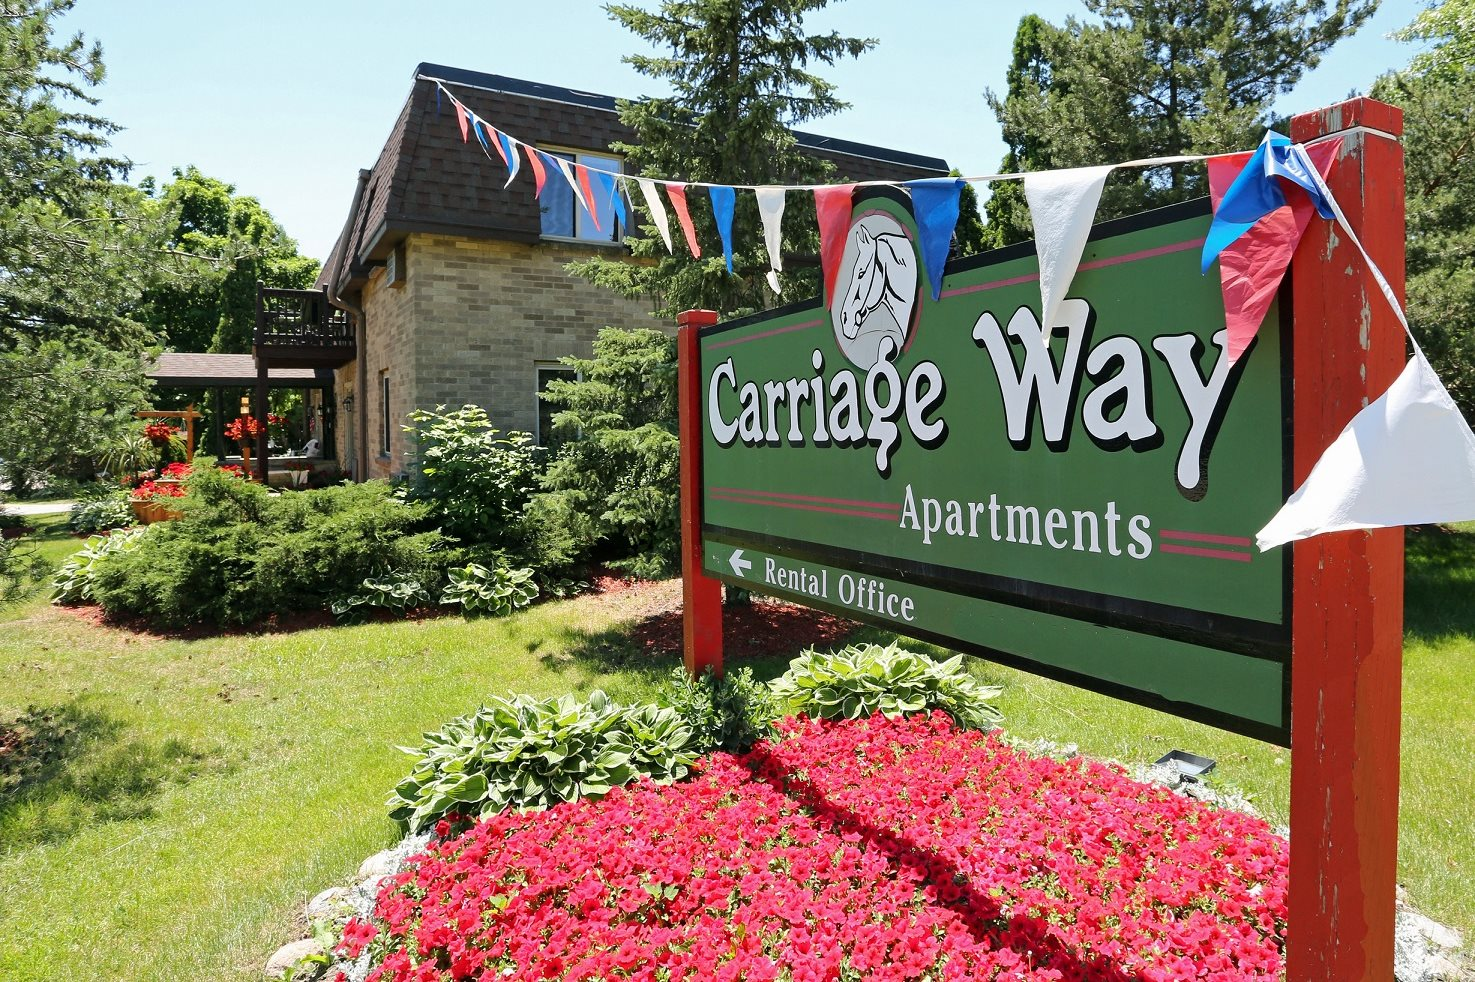 Carriageway | Apartments in New Berlin, WI